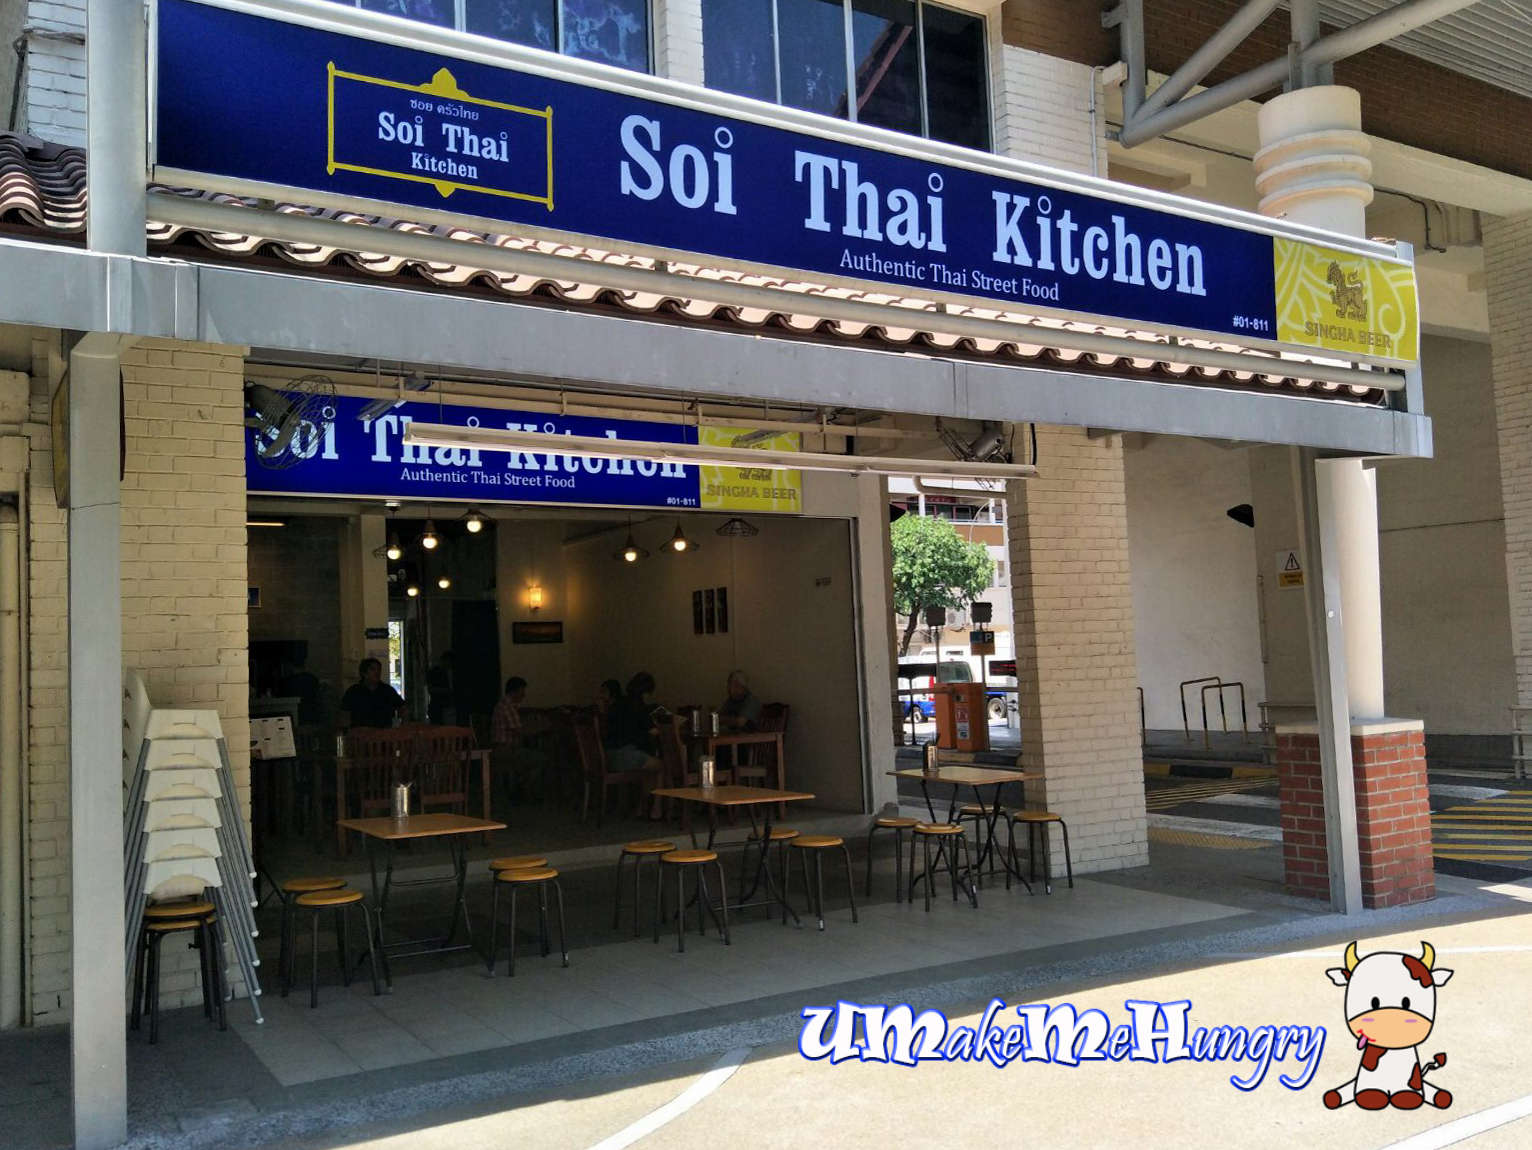 Thai Kitchen Food Travel & Photography Soi Thai Kitchen